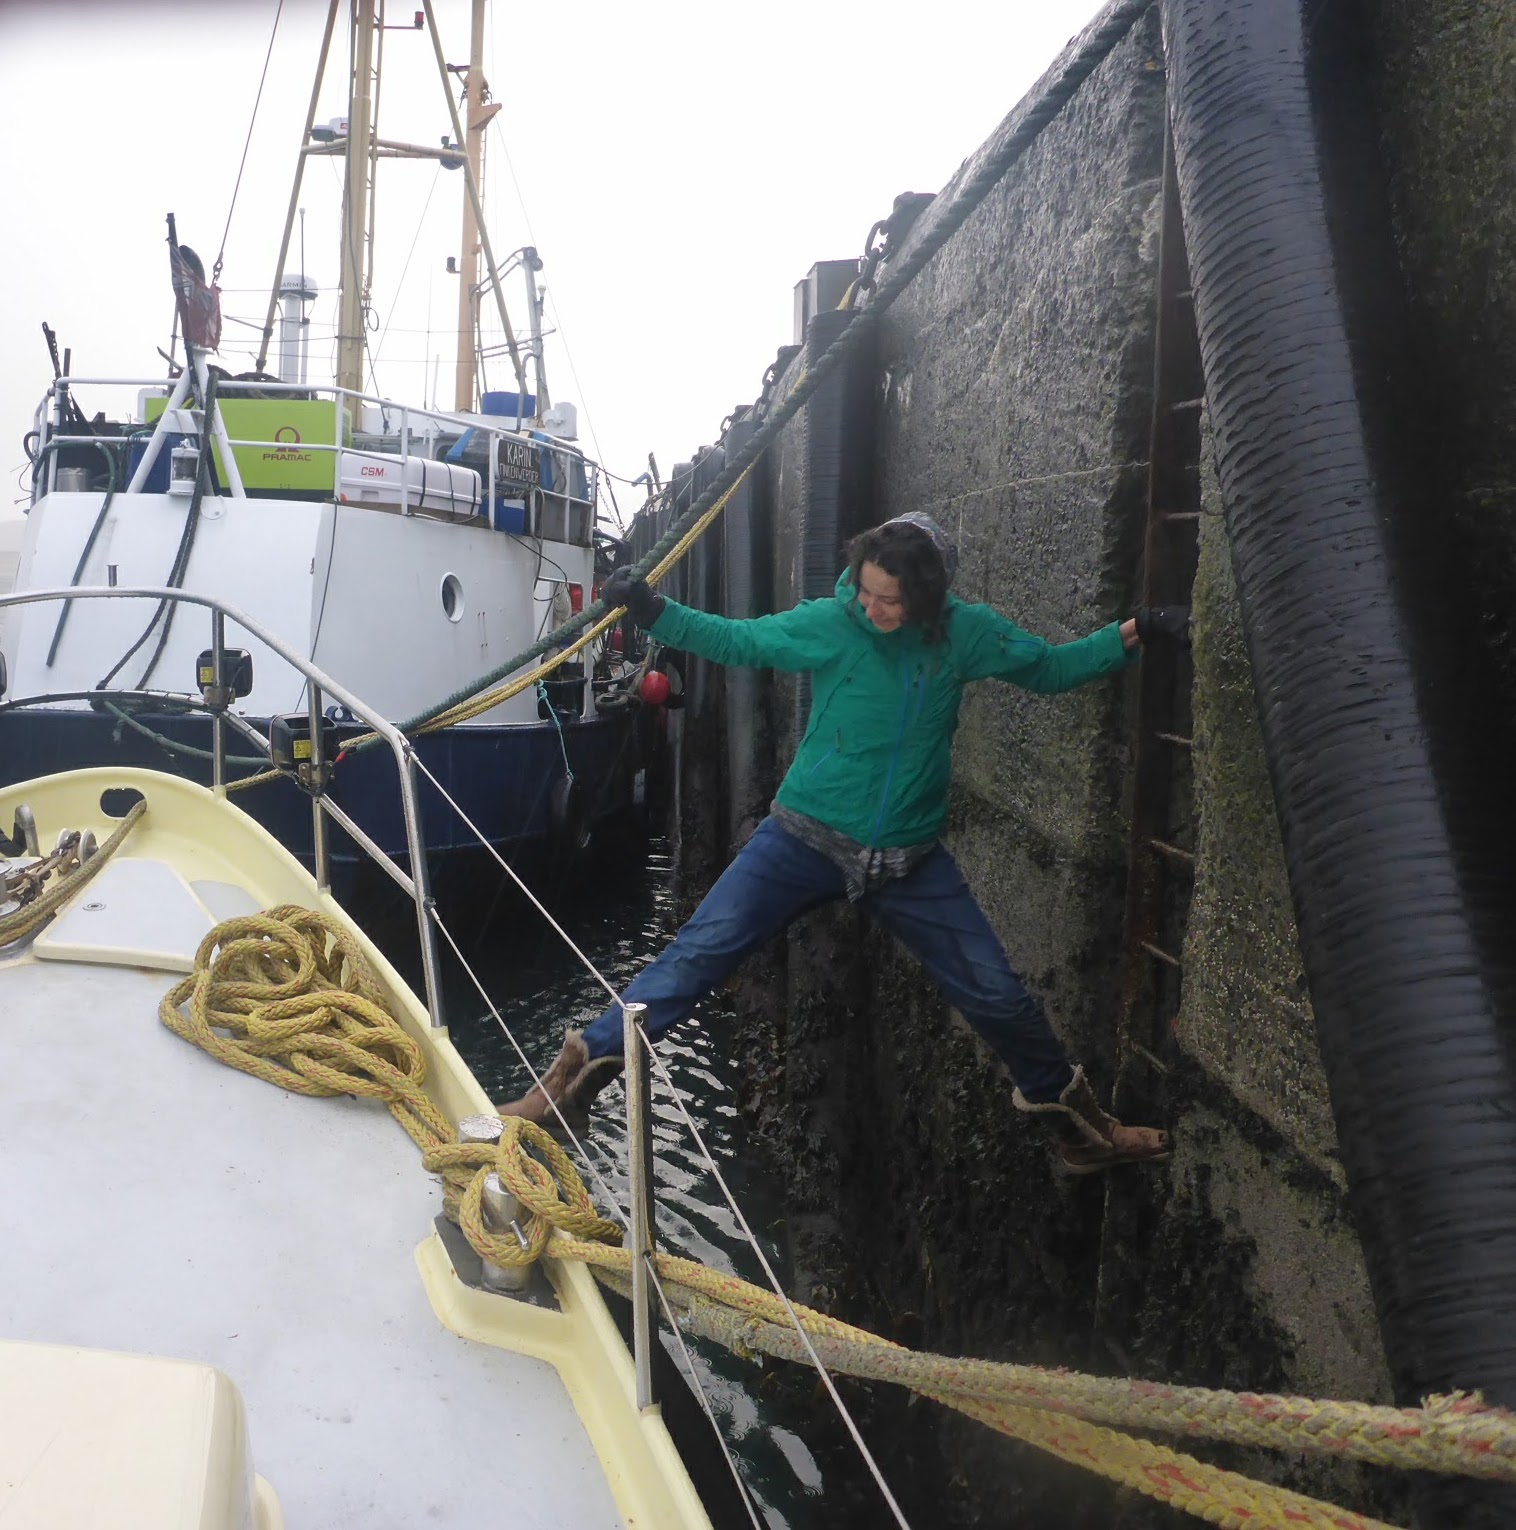 The author pays a visit to a boat crew as part of her job as a data processing field office coordinator in Orkney Islands, Scotland. [Photo] Suzana EL Massri collection